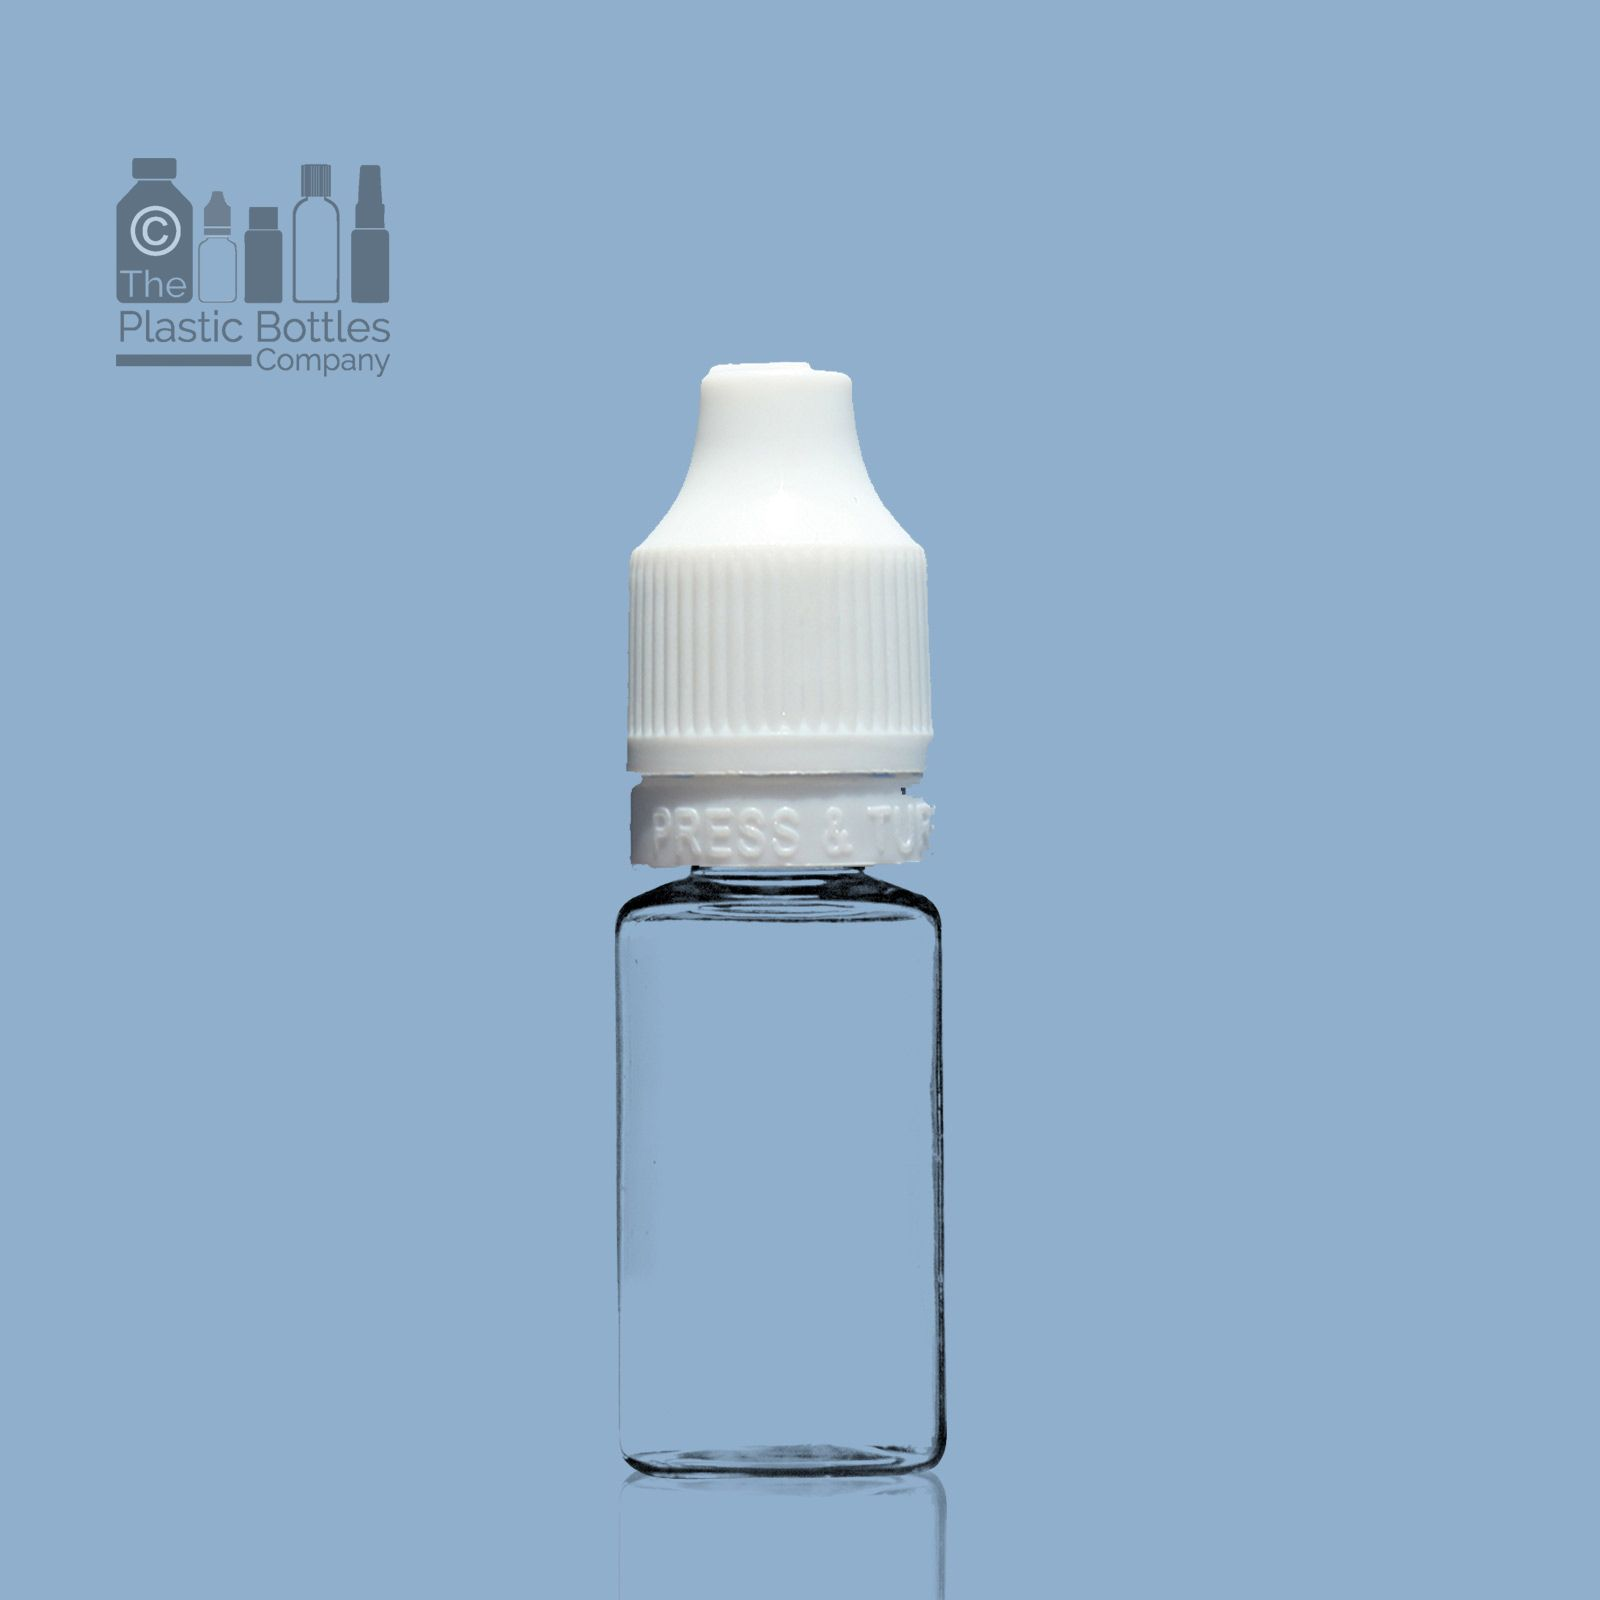 10ml Tamper Evident PET Bottle with Child Resistant Cap and